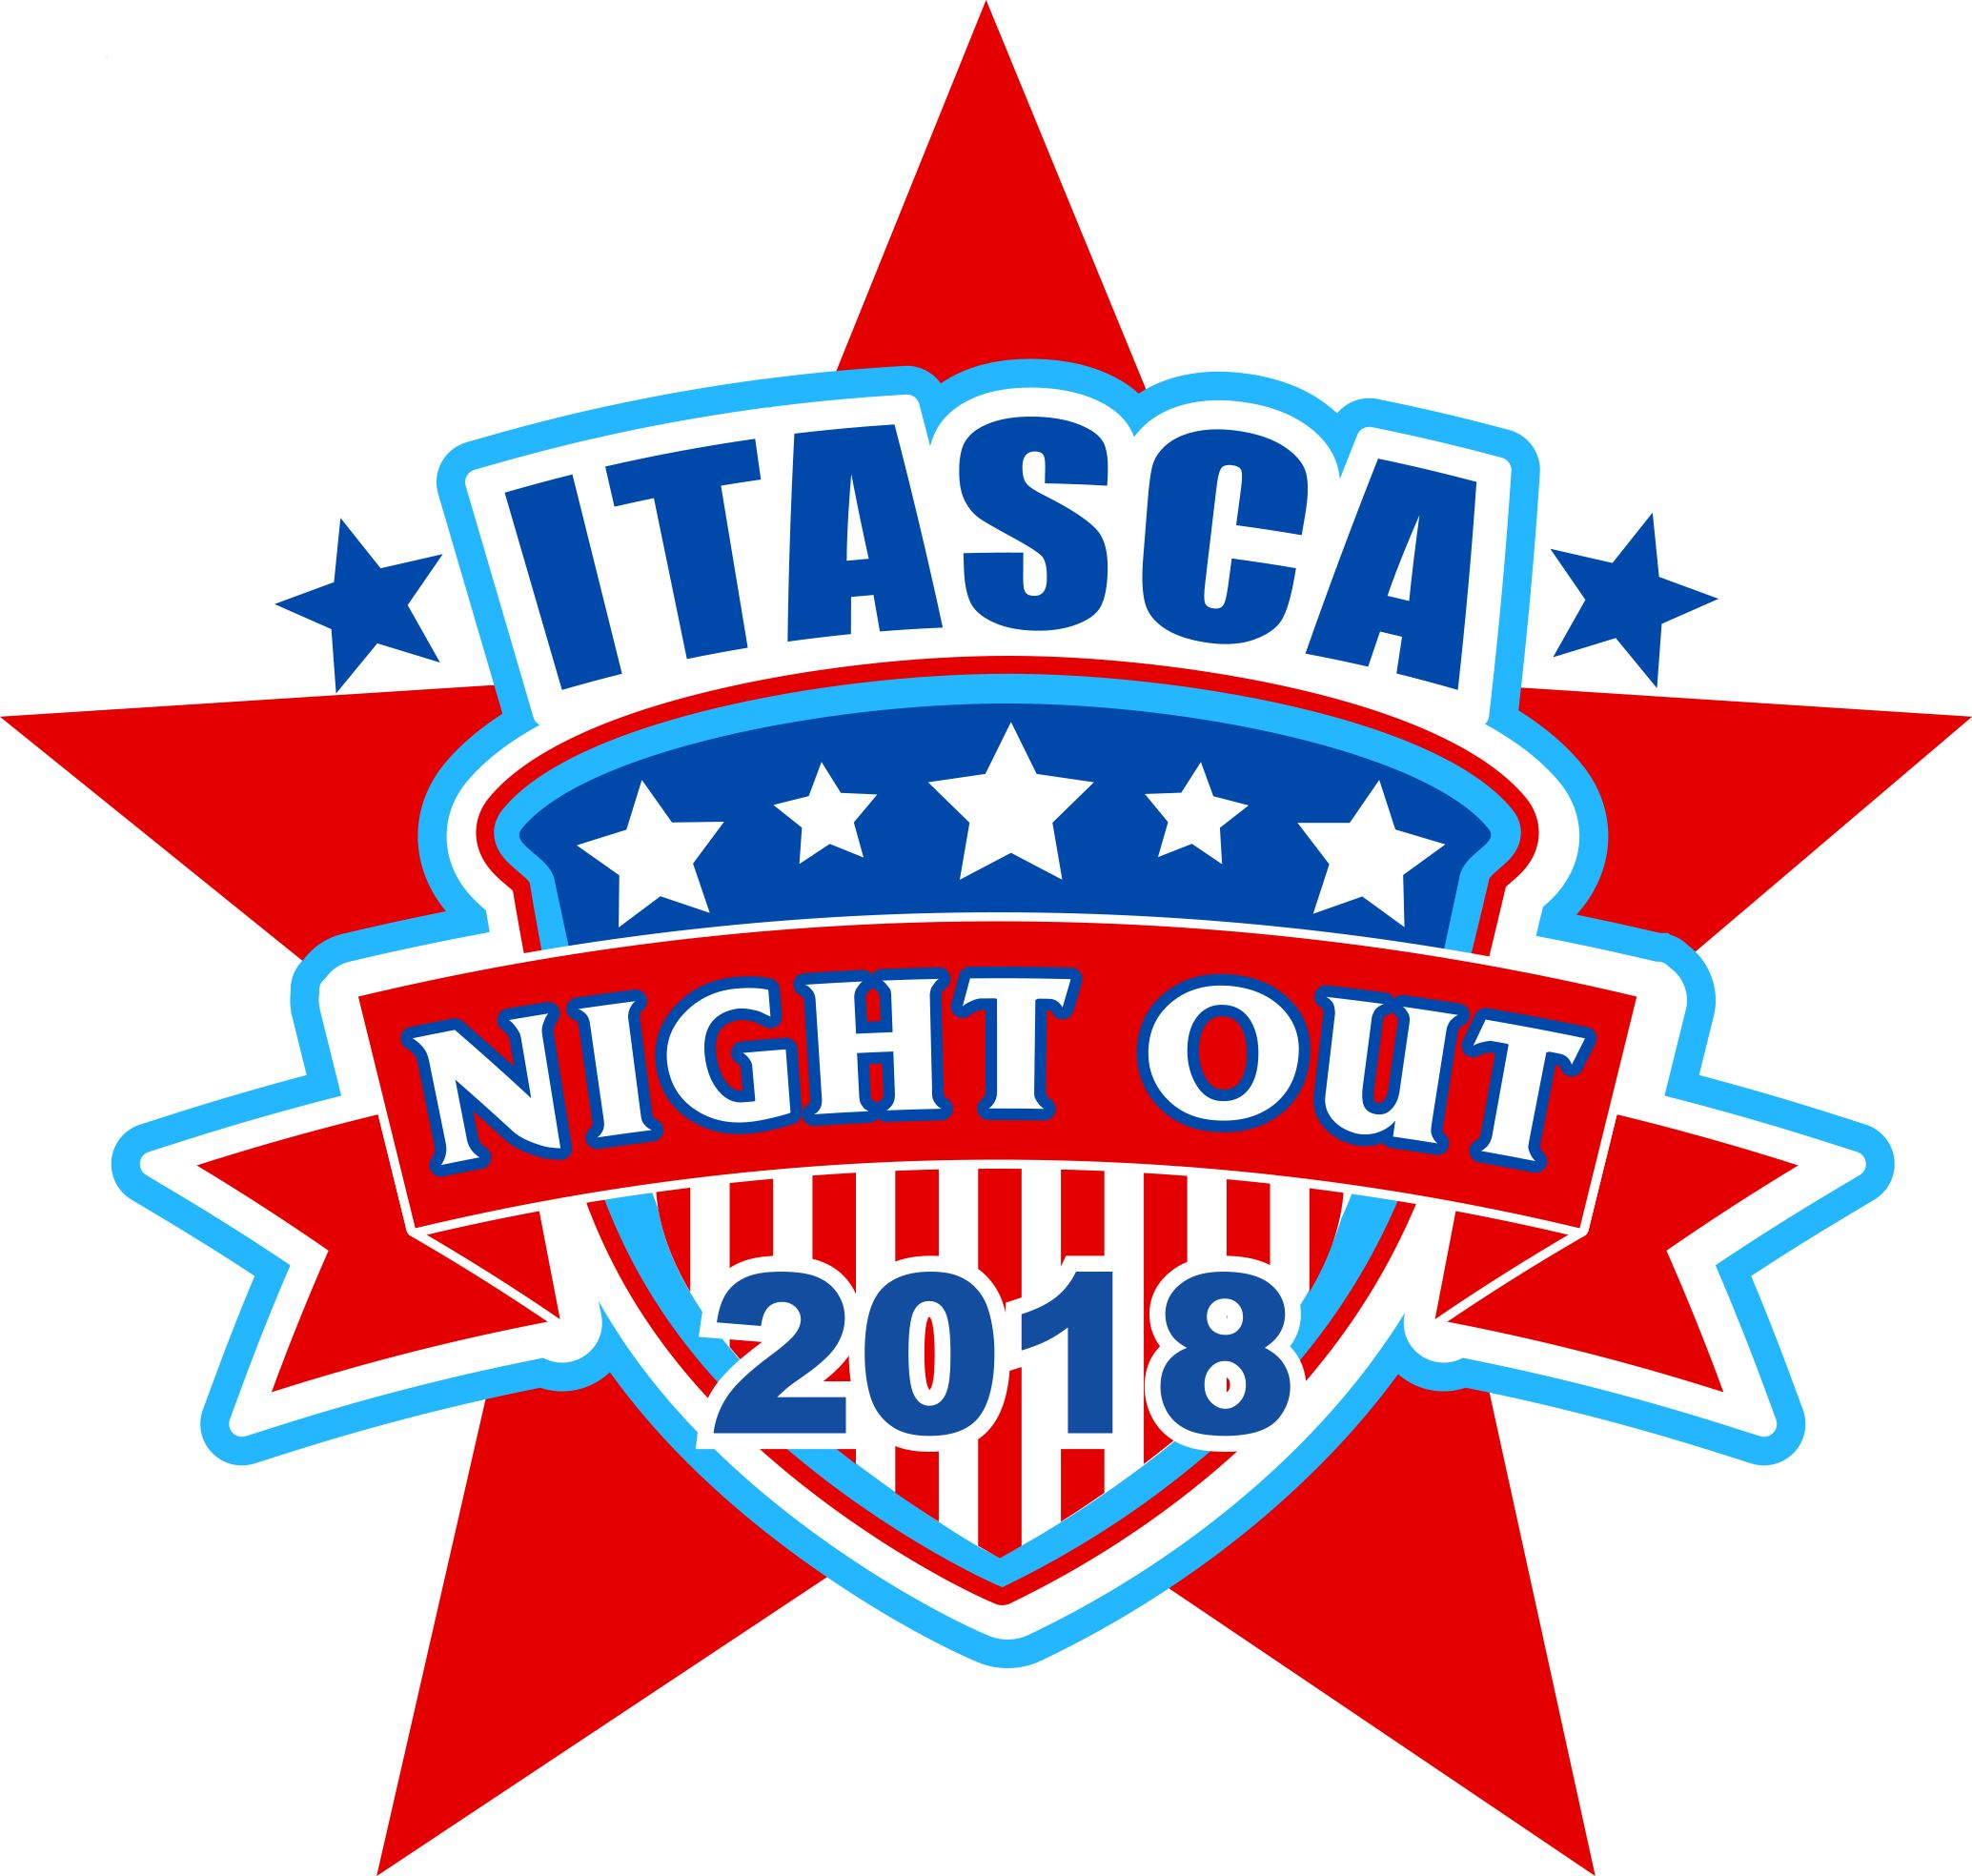 Itasca Night Out 2018